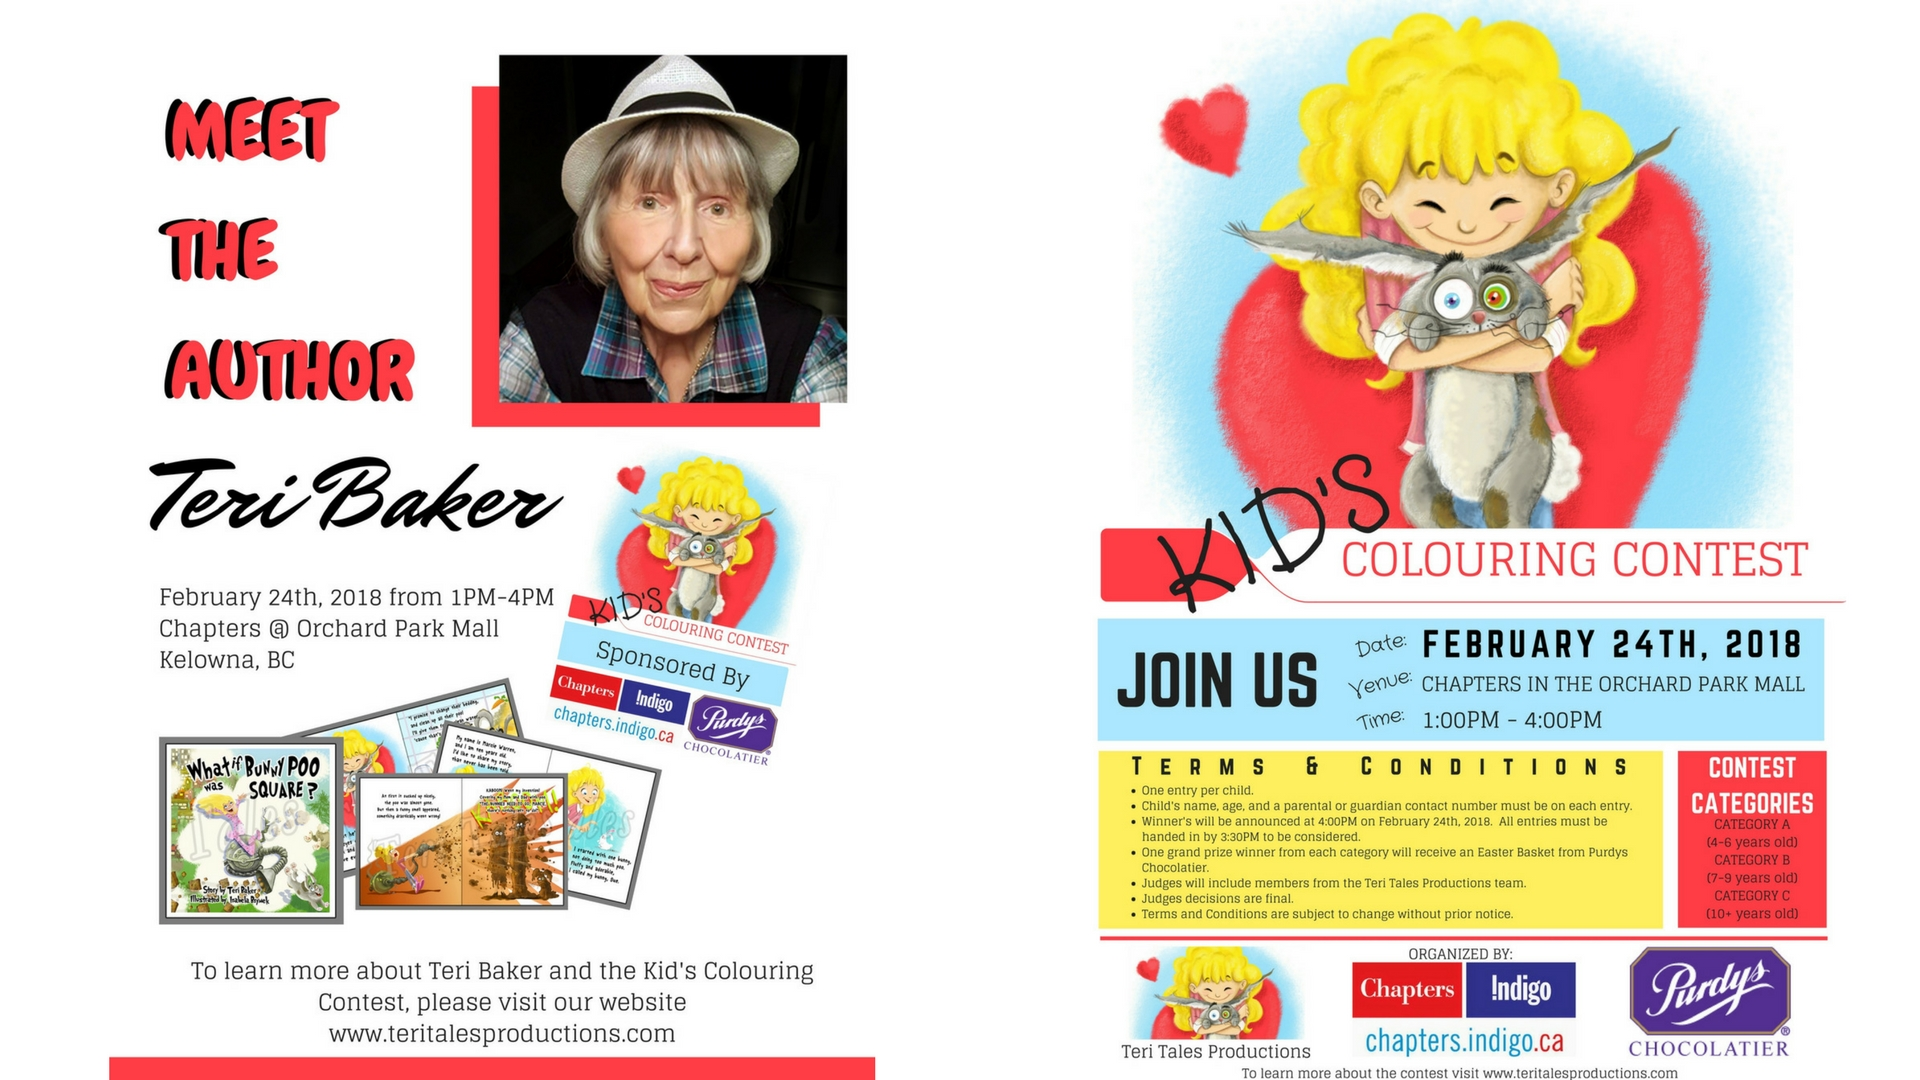 Event posters - meet the author and kid's colouring contest